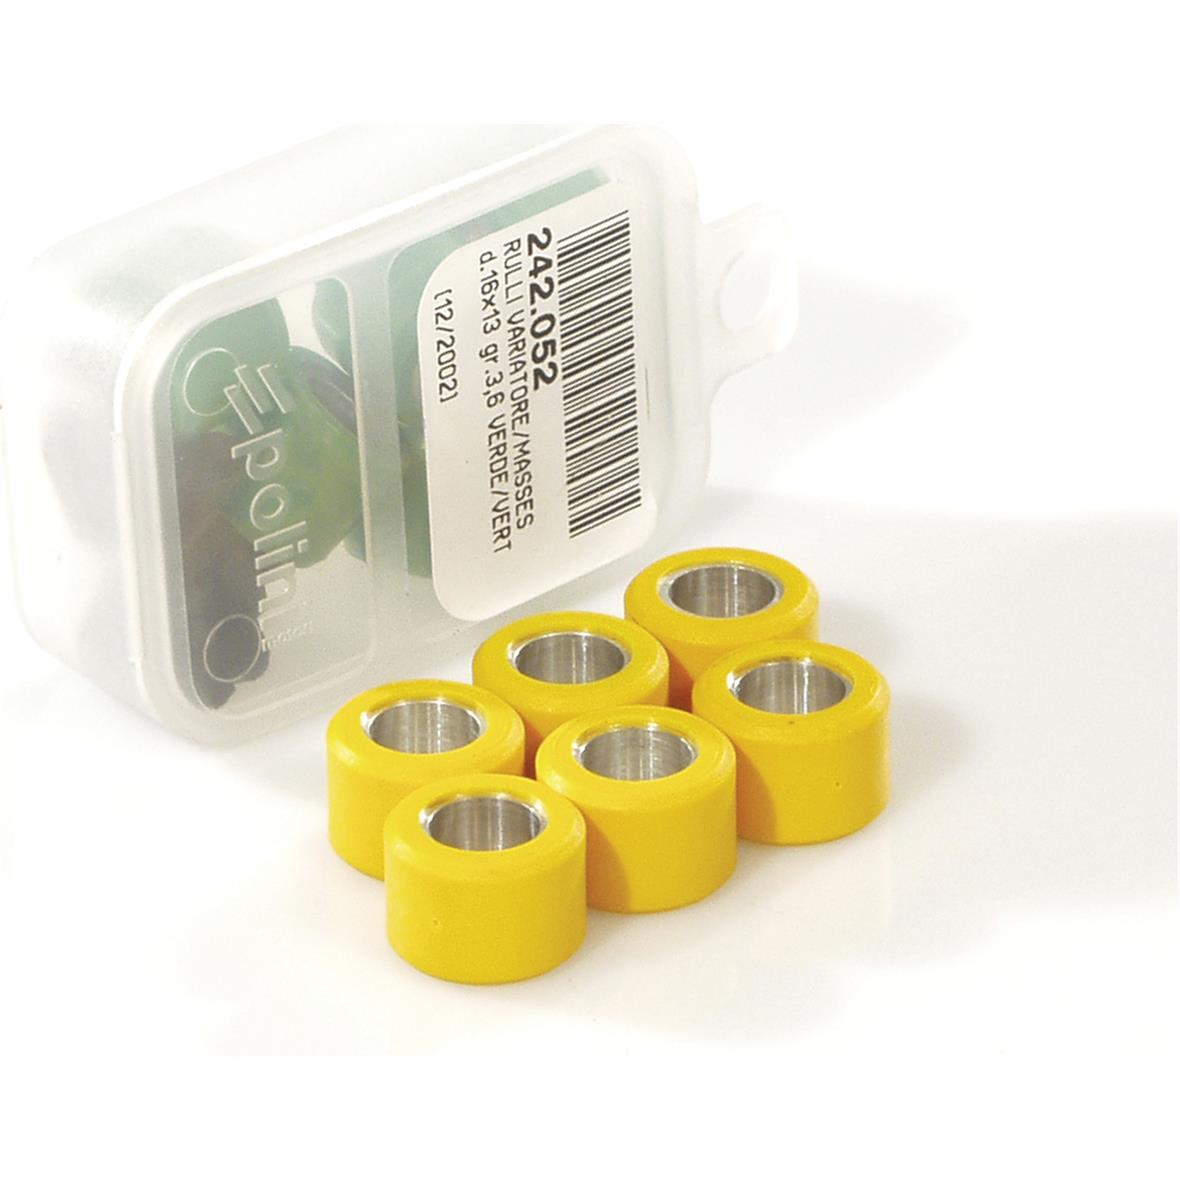 Product Image for 'Variator Rollers POLINI 23x18 mm 16,0gTitle'